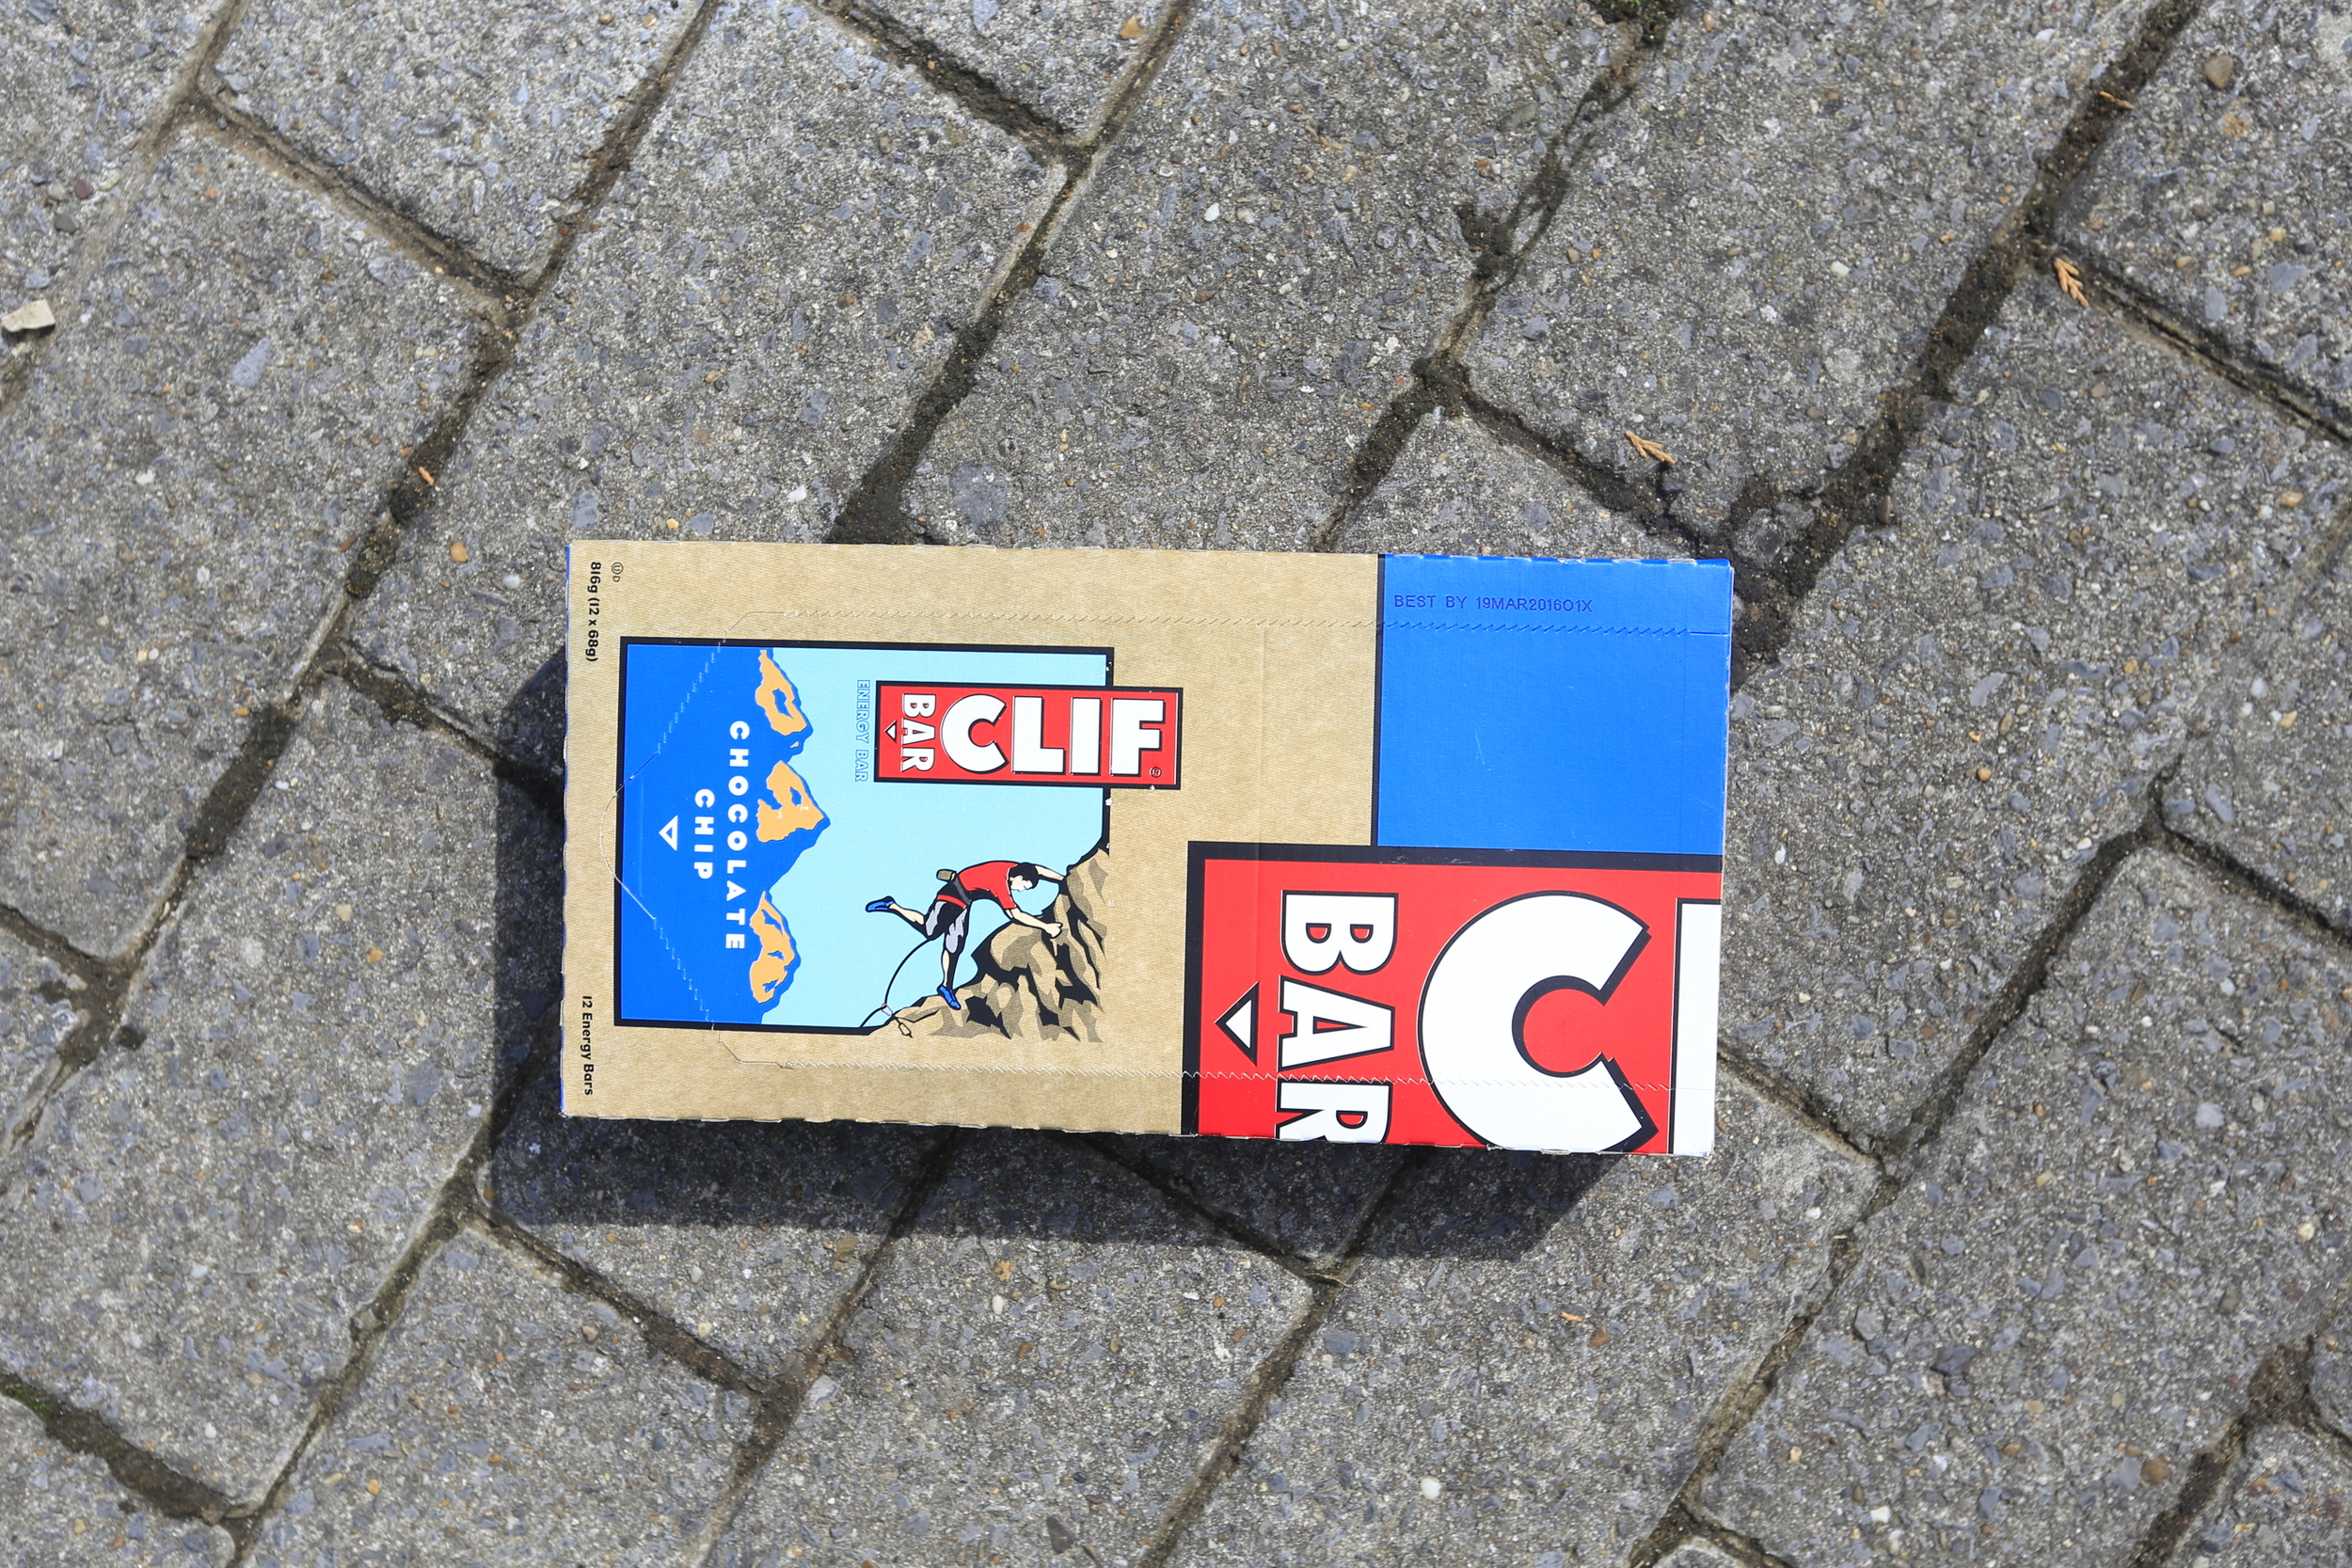 I did manage to get my hands on some   Clif Bars  .